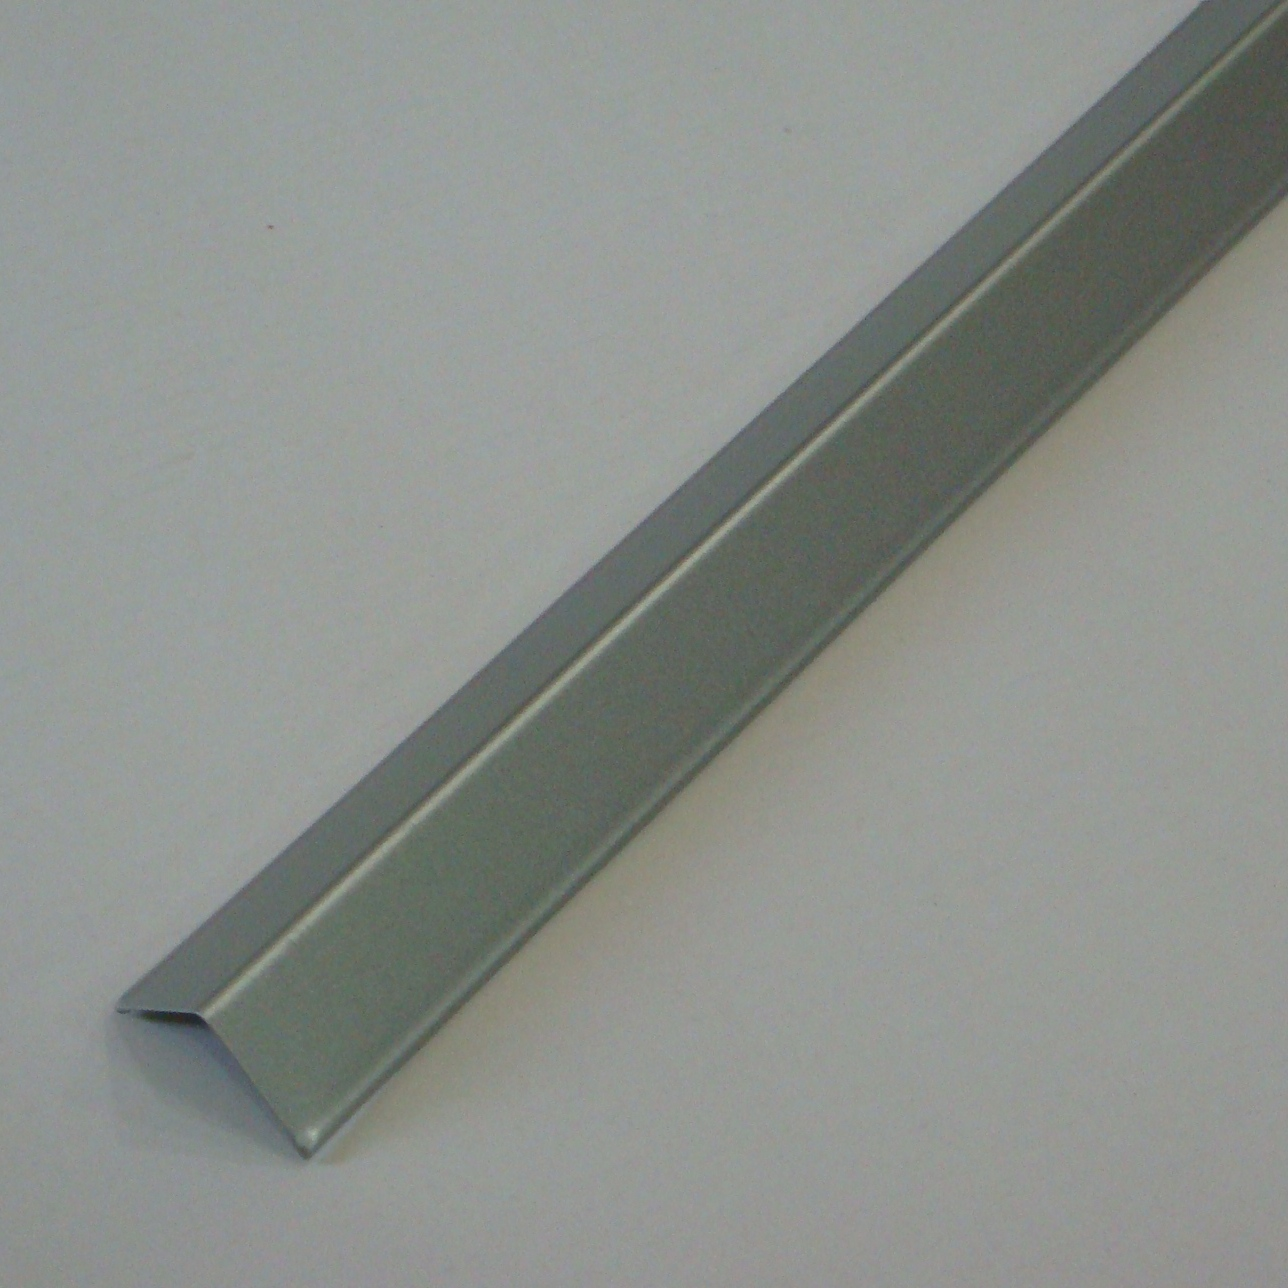 Wall Angle Long Range Suspended Ceiling Grid Perforated